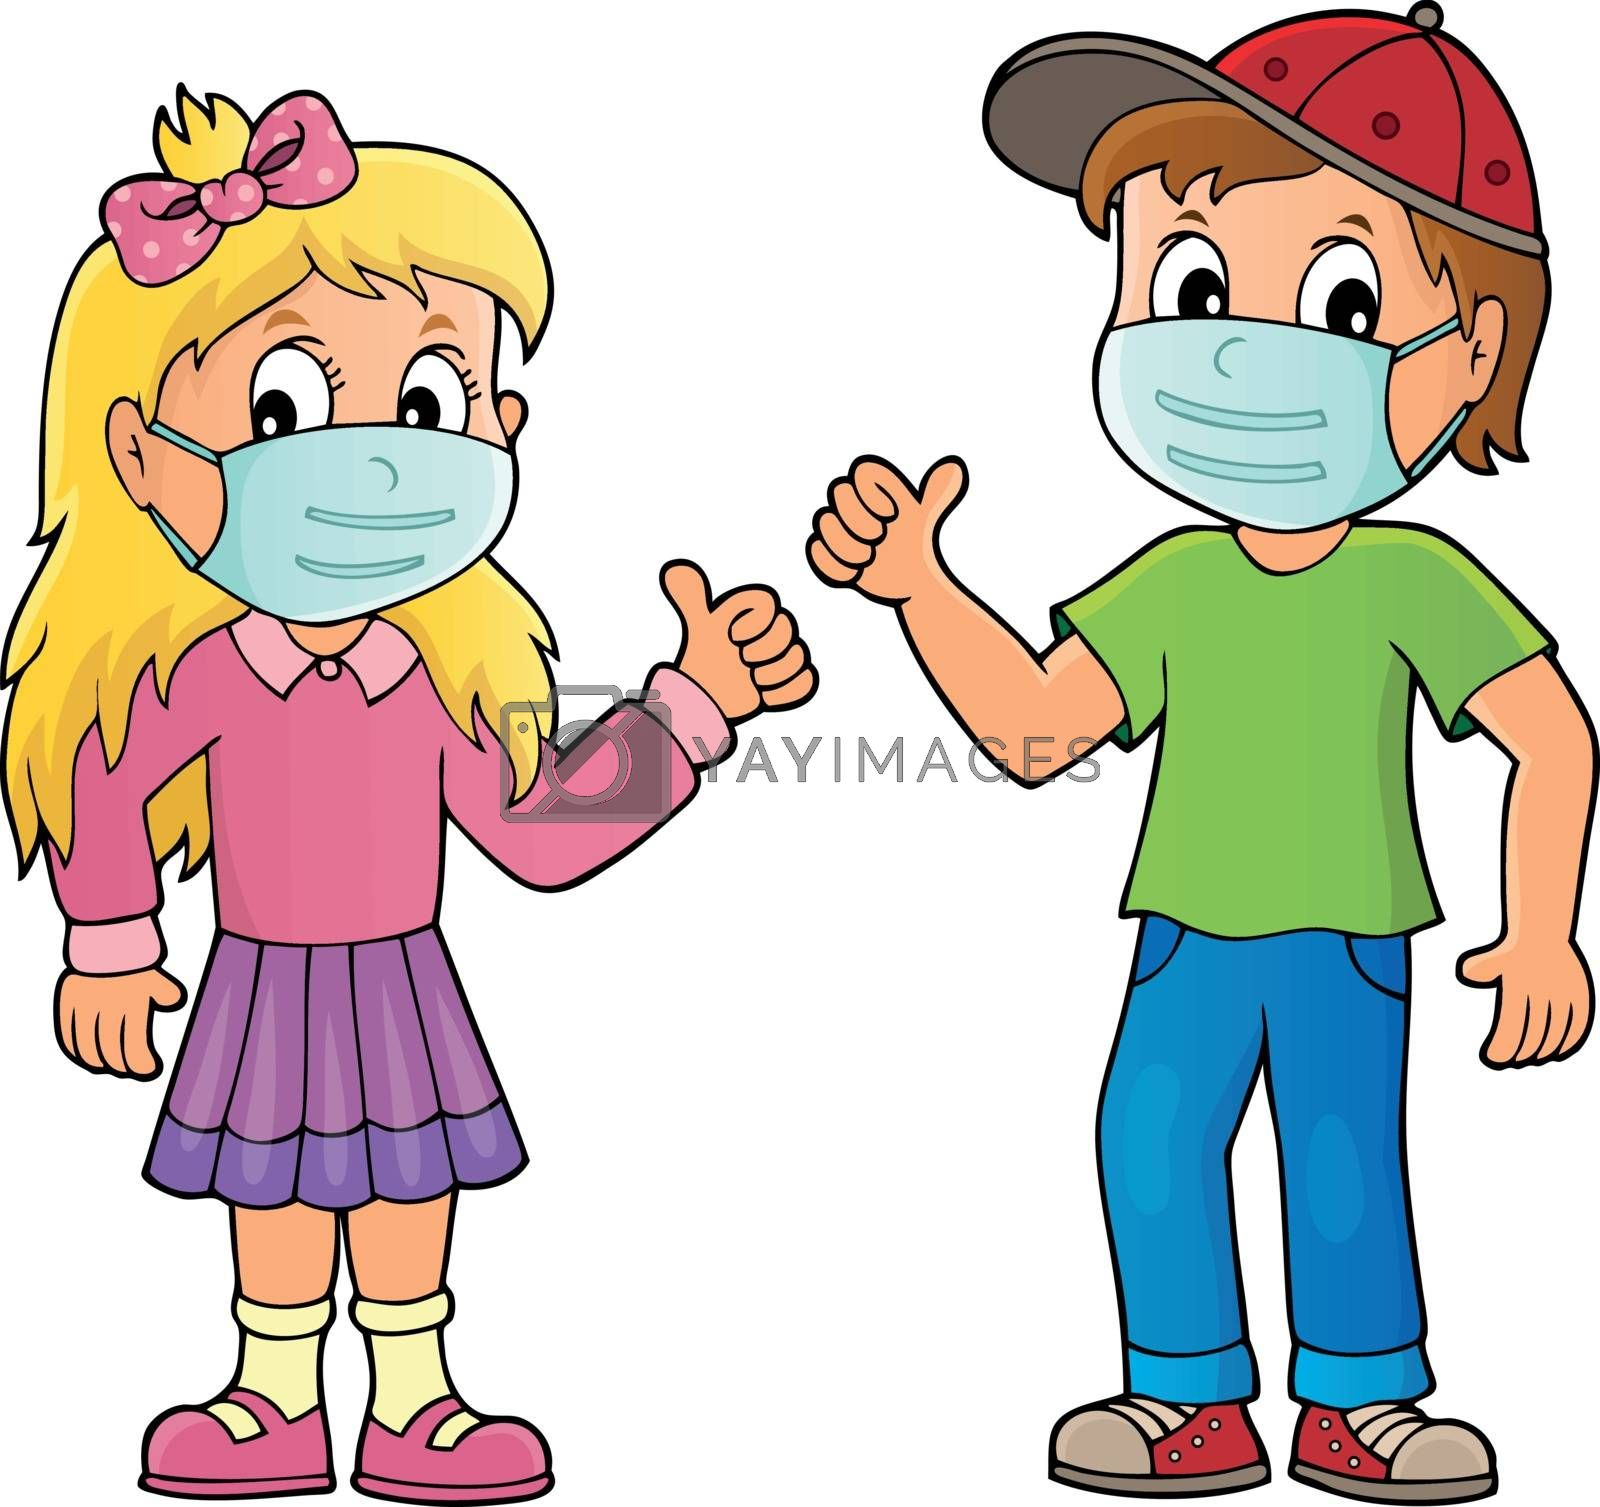 Children in medical masks theme image 1 - eps10 vector illustration.